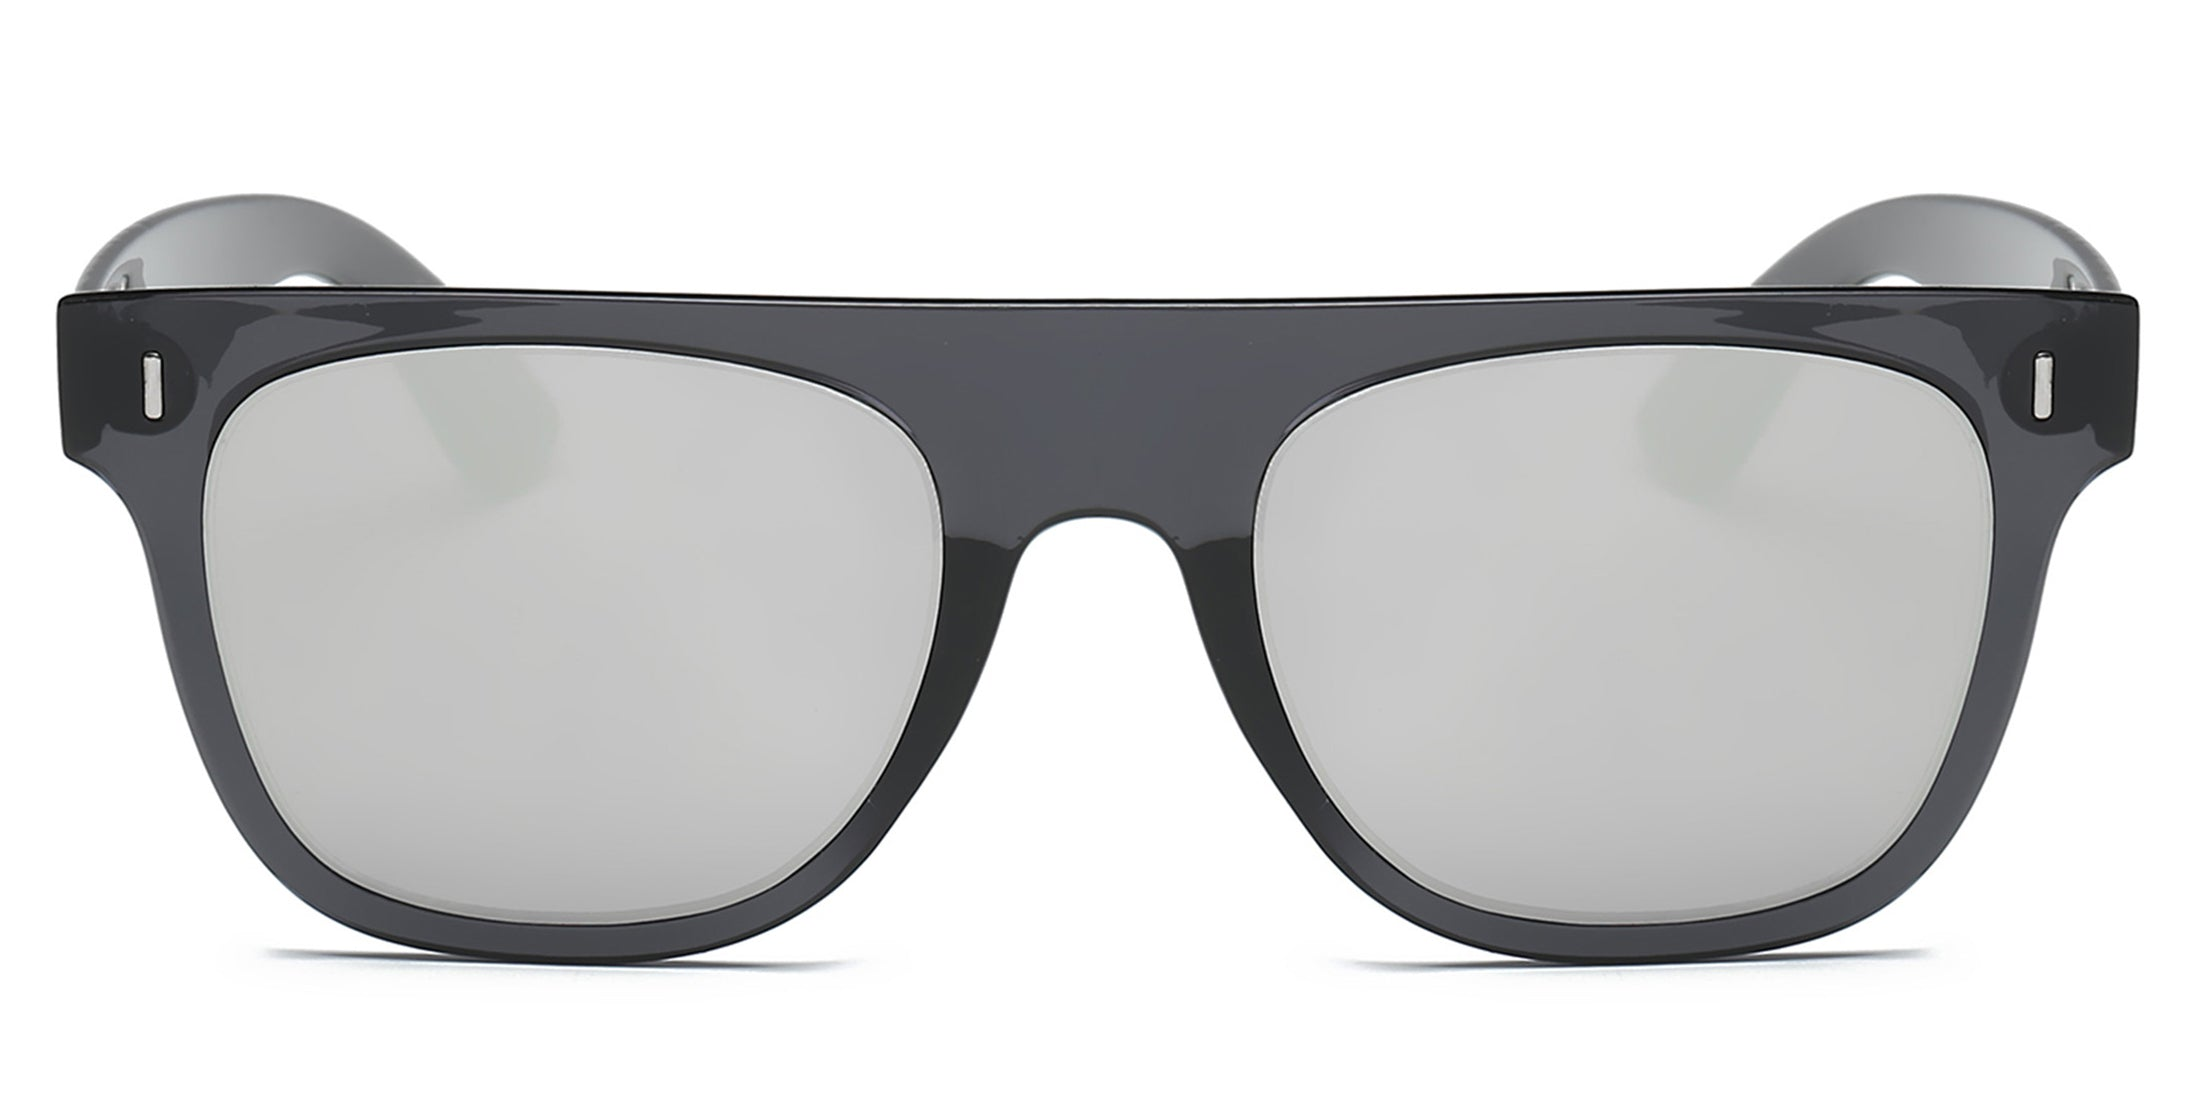 Akcessoryz-unisex square sunglasses with silver lens and black frame